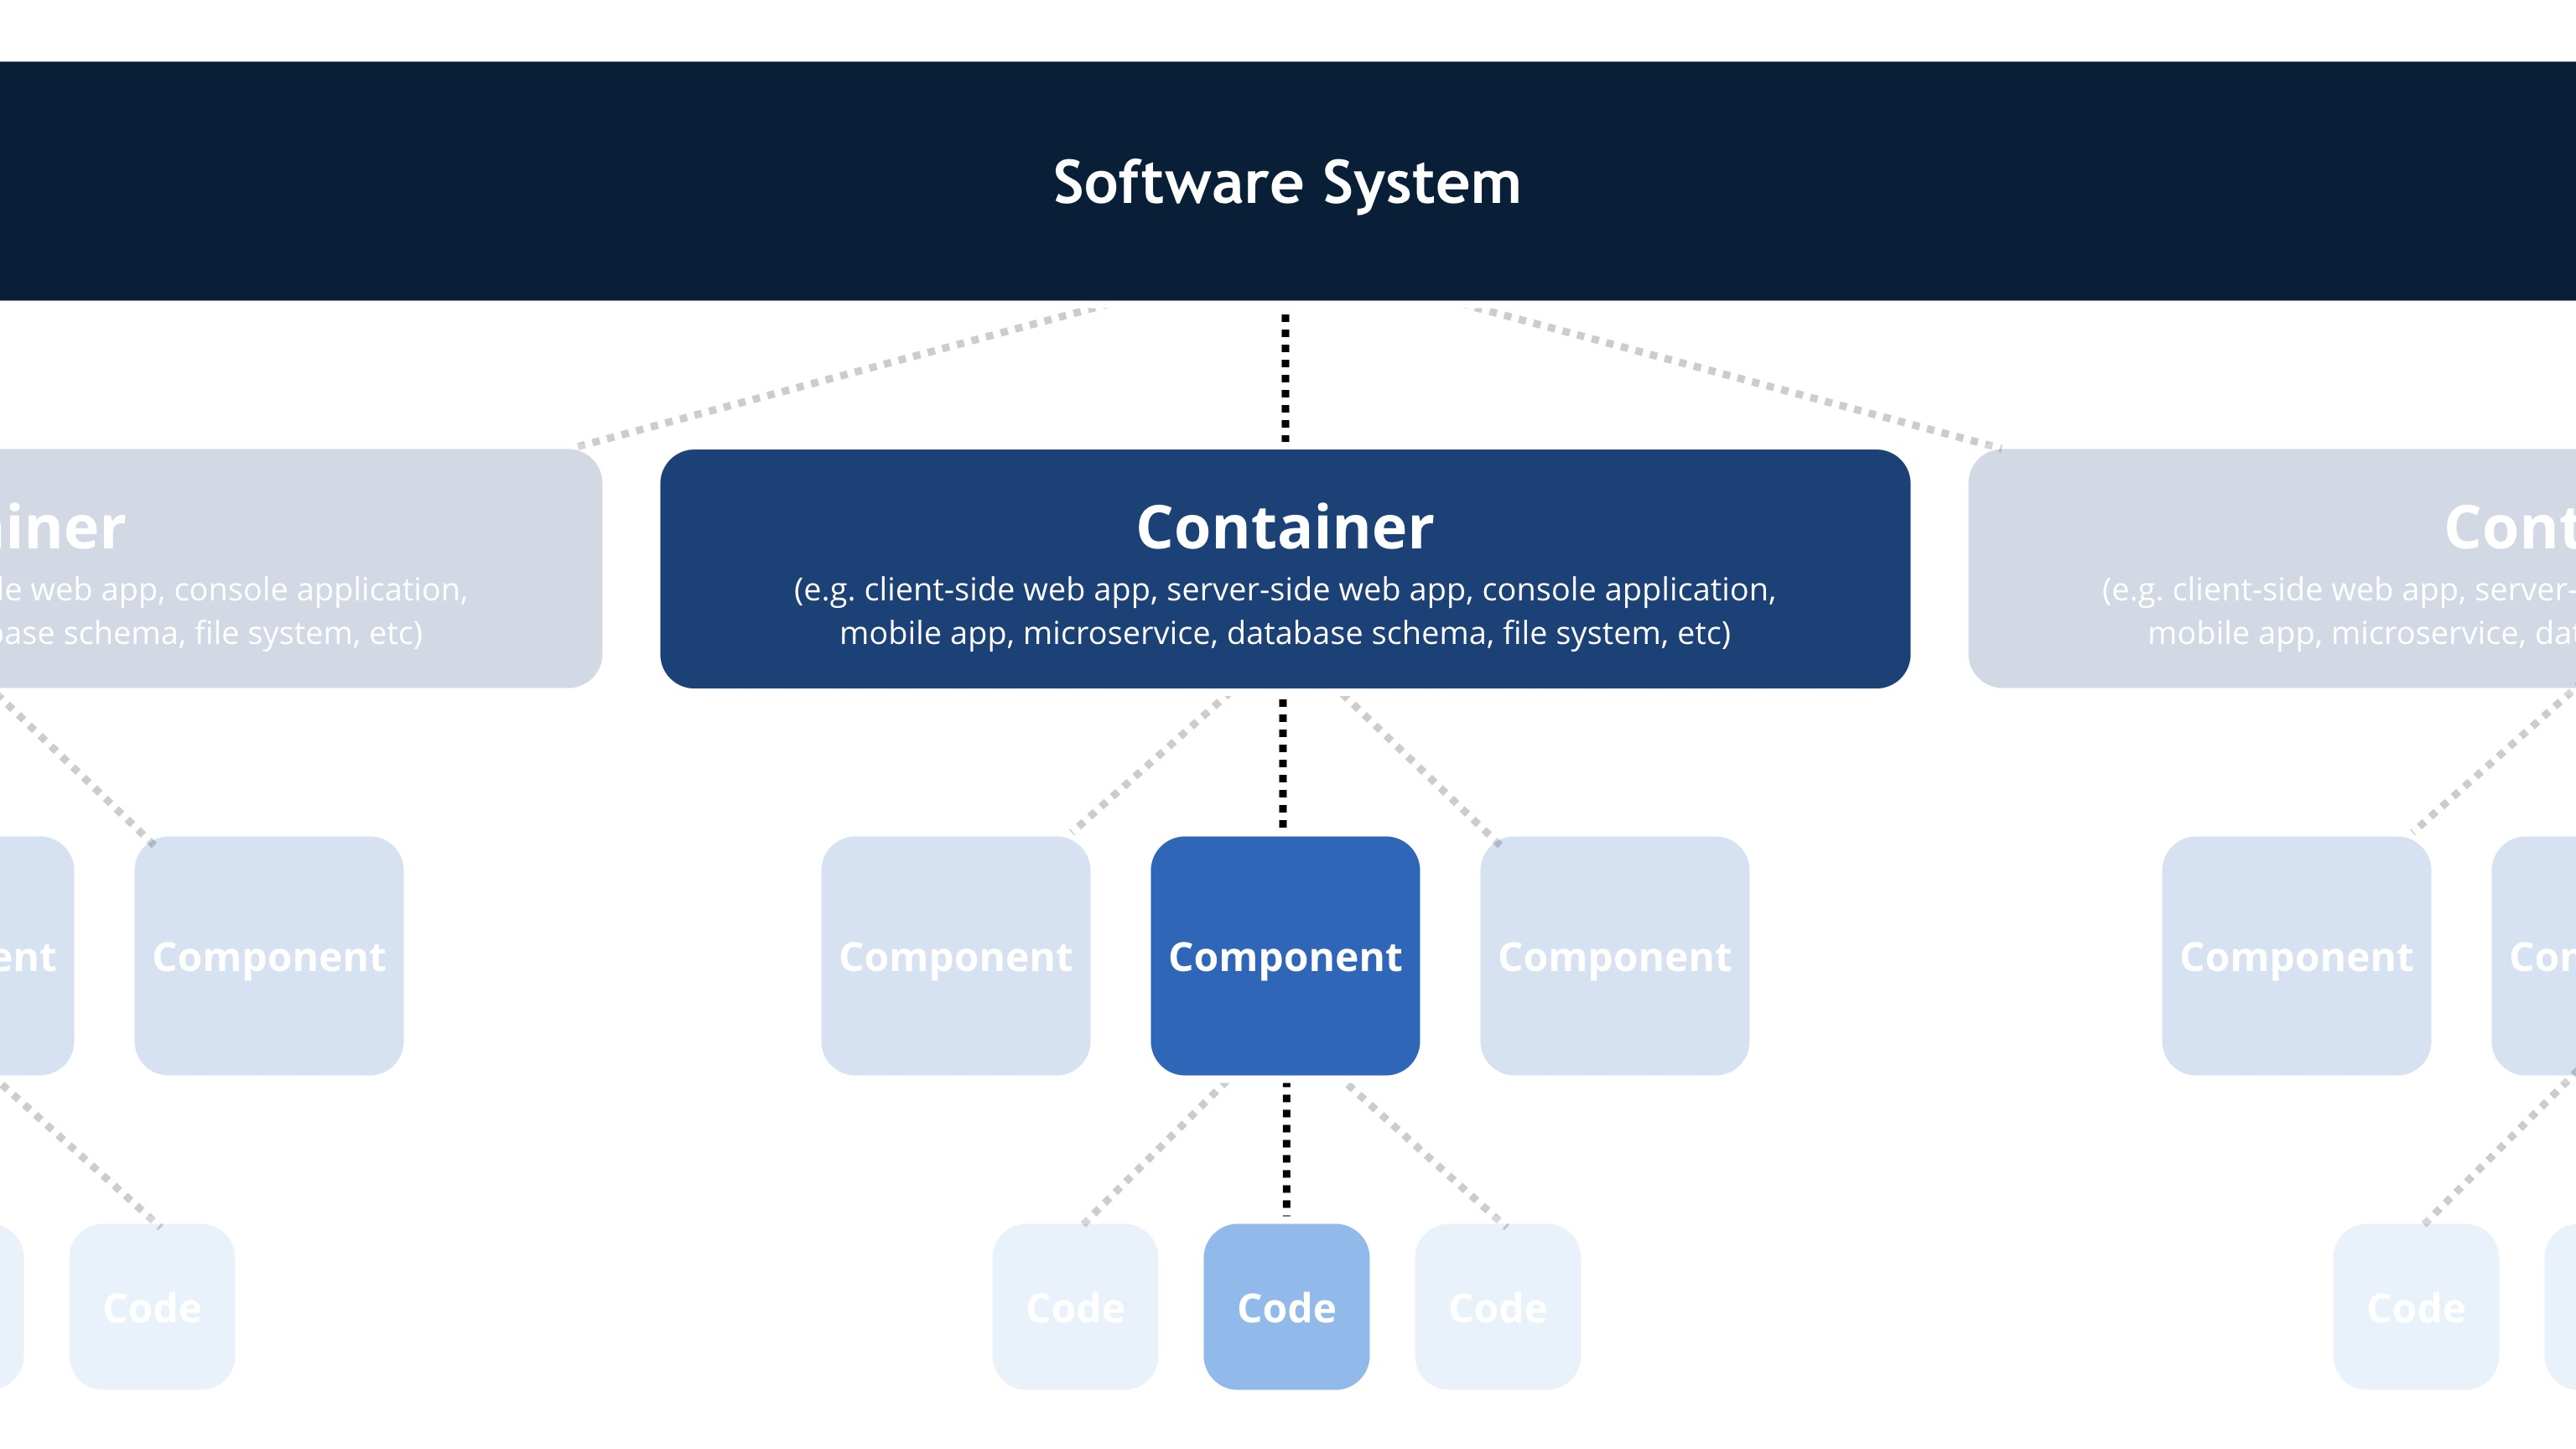 The C4 Model For Software Architecture